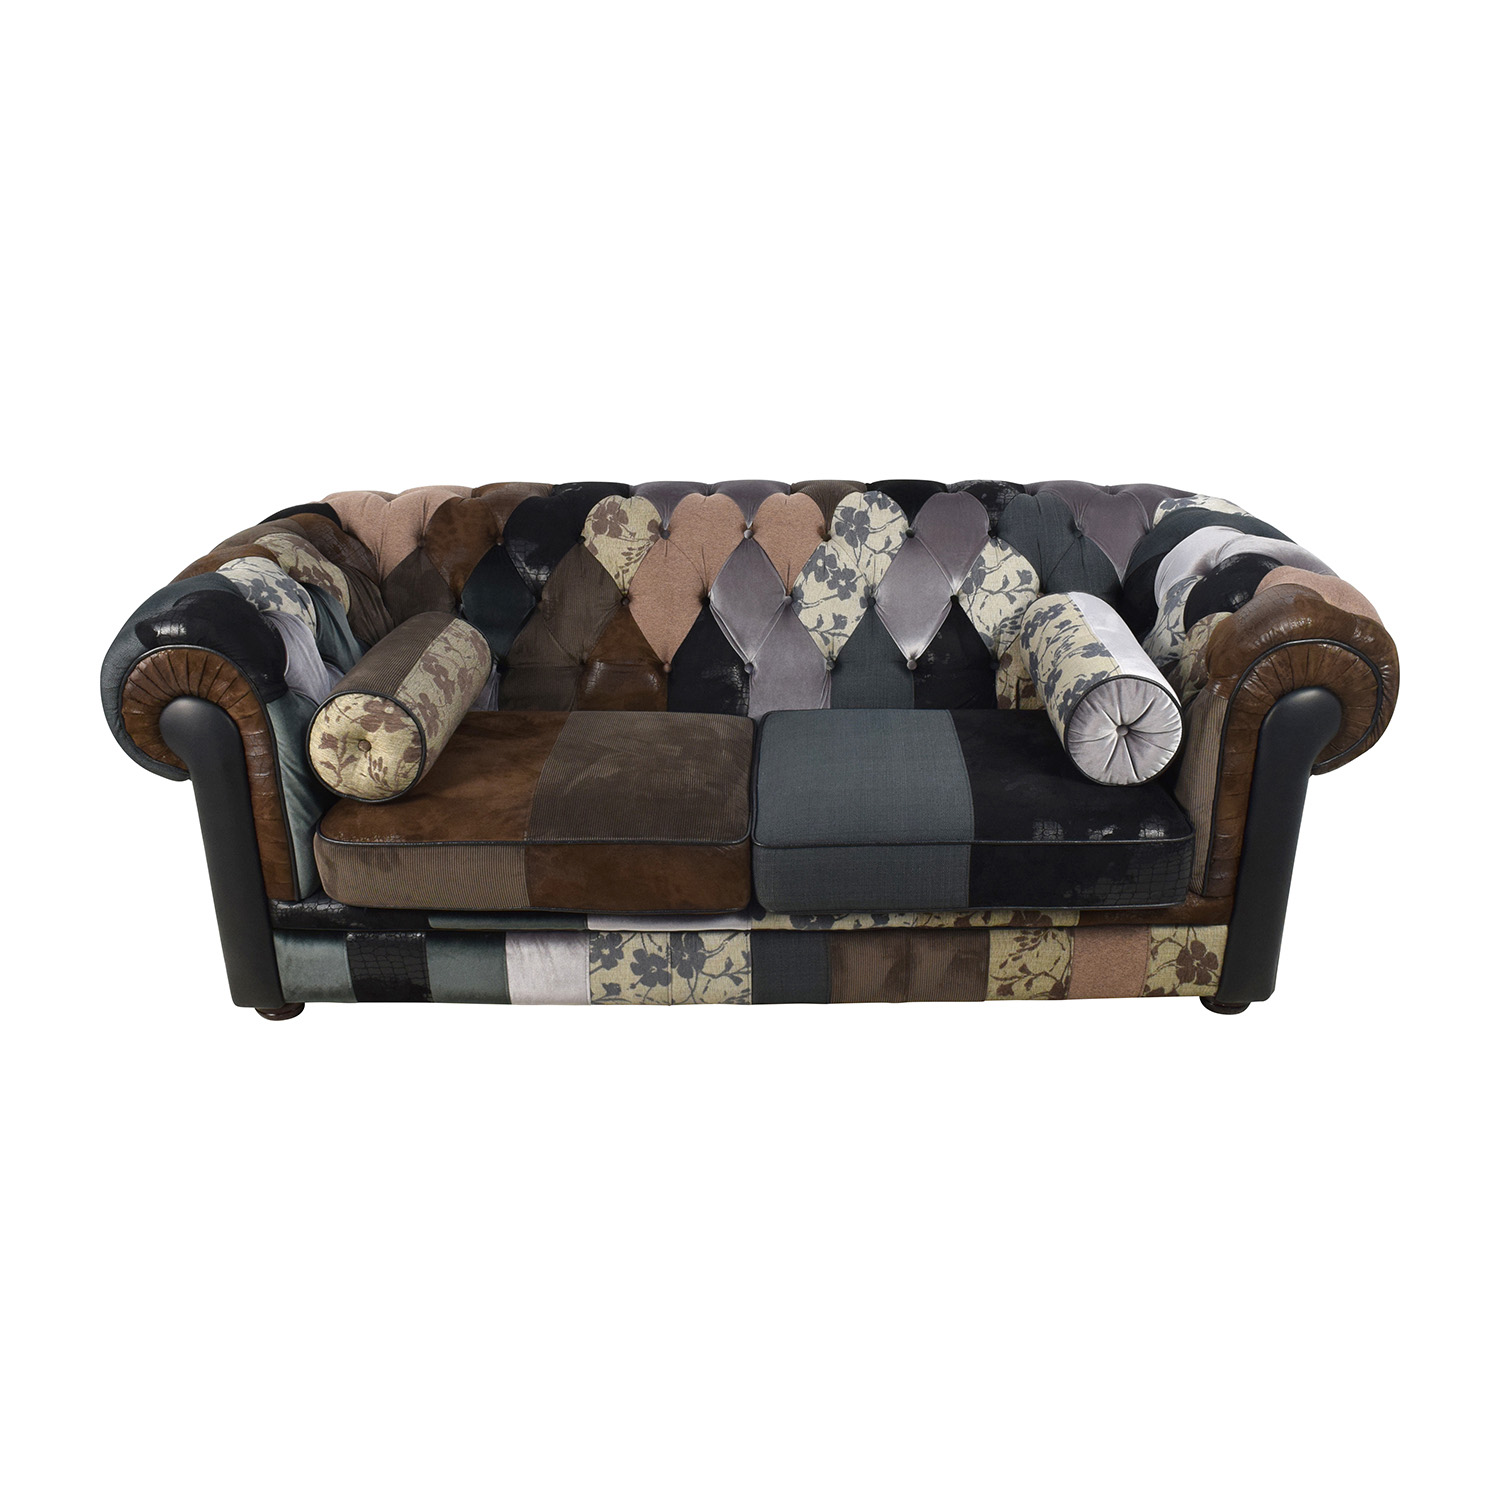 ... France And Son France U0026 Son Egan Tufted Chesterfield Patchwork Sofa ...